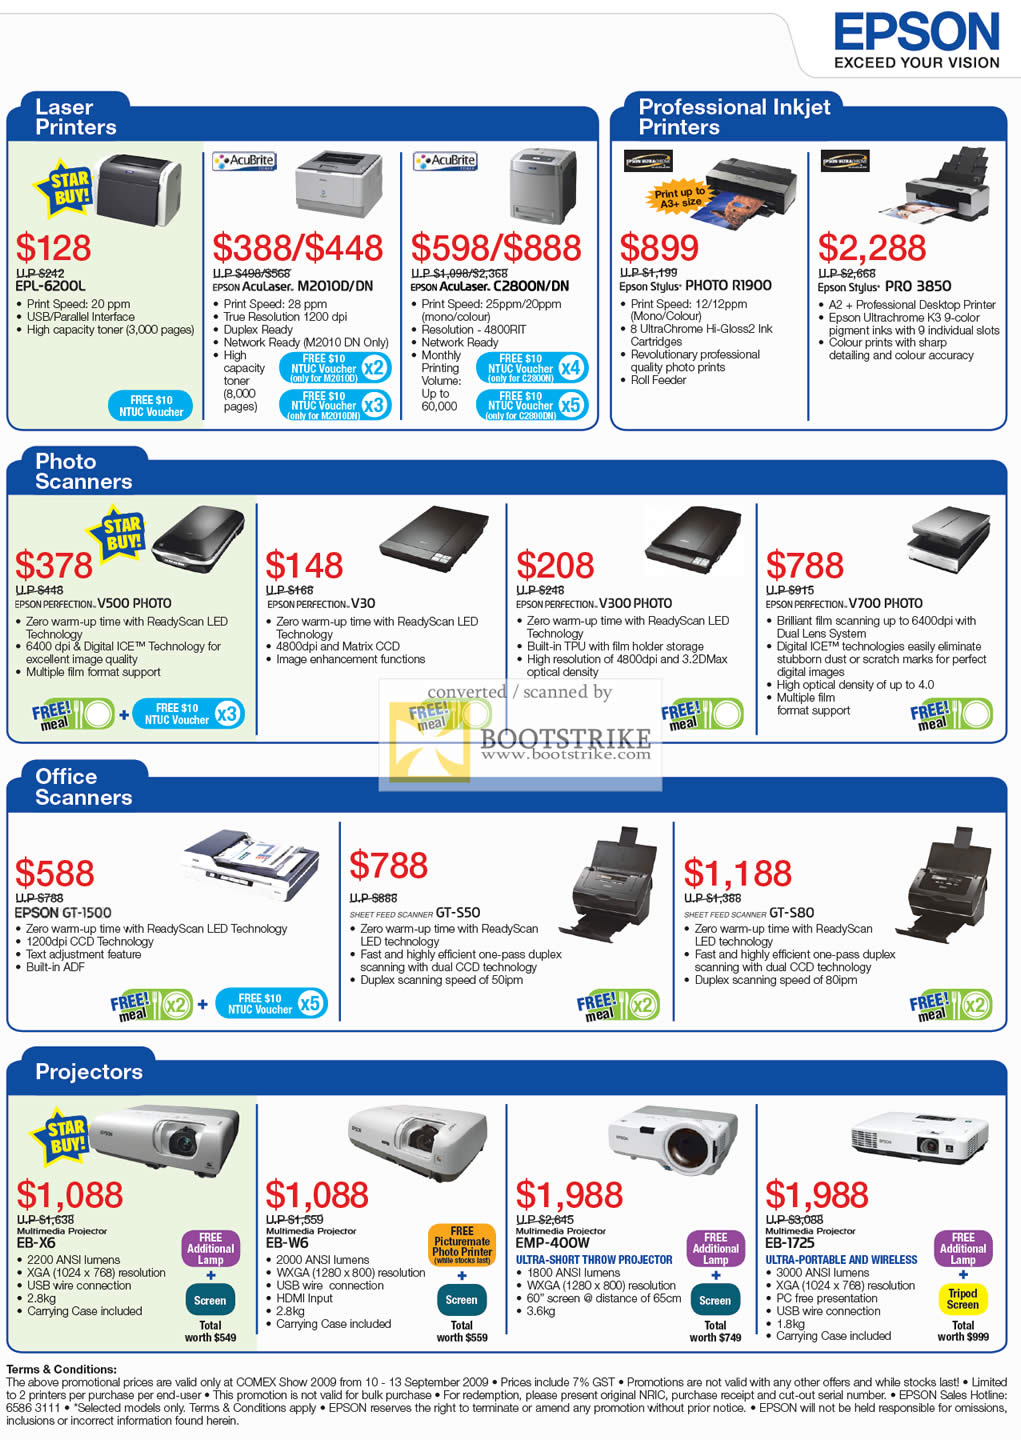 Comex 2009 price list image brochure of Epson Laser Printers Photo Scanners Office Projectors